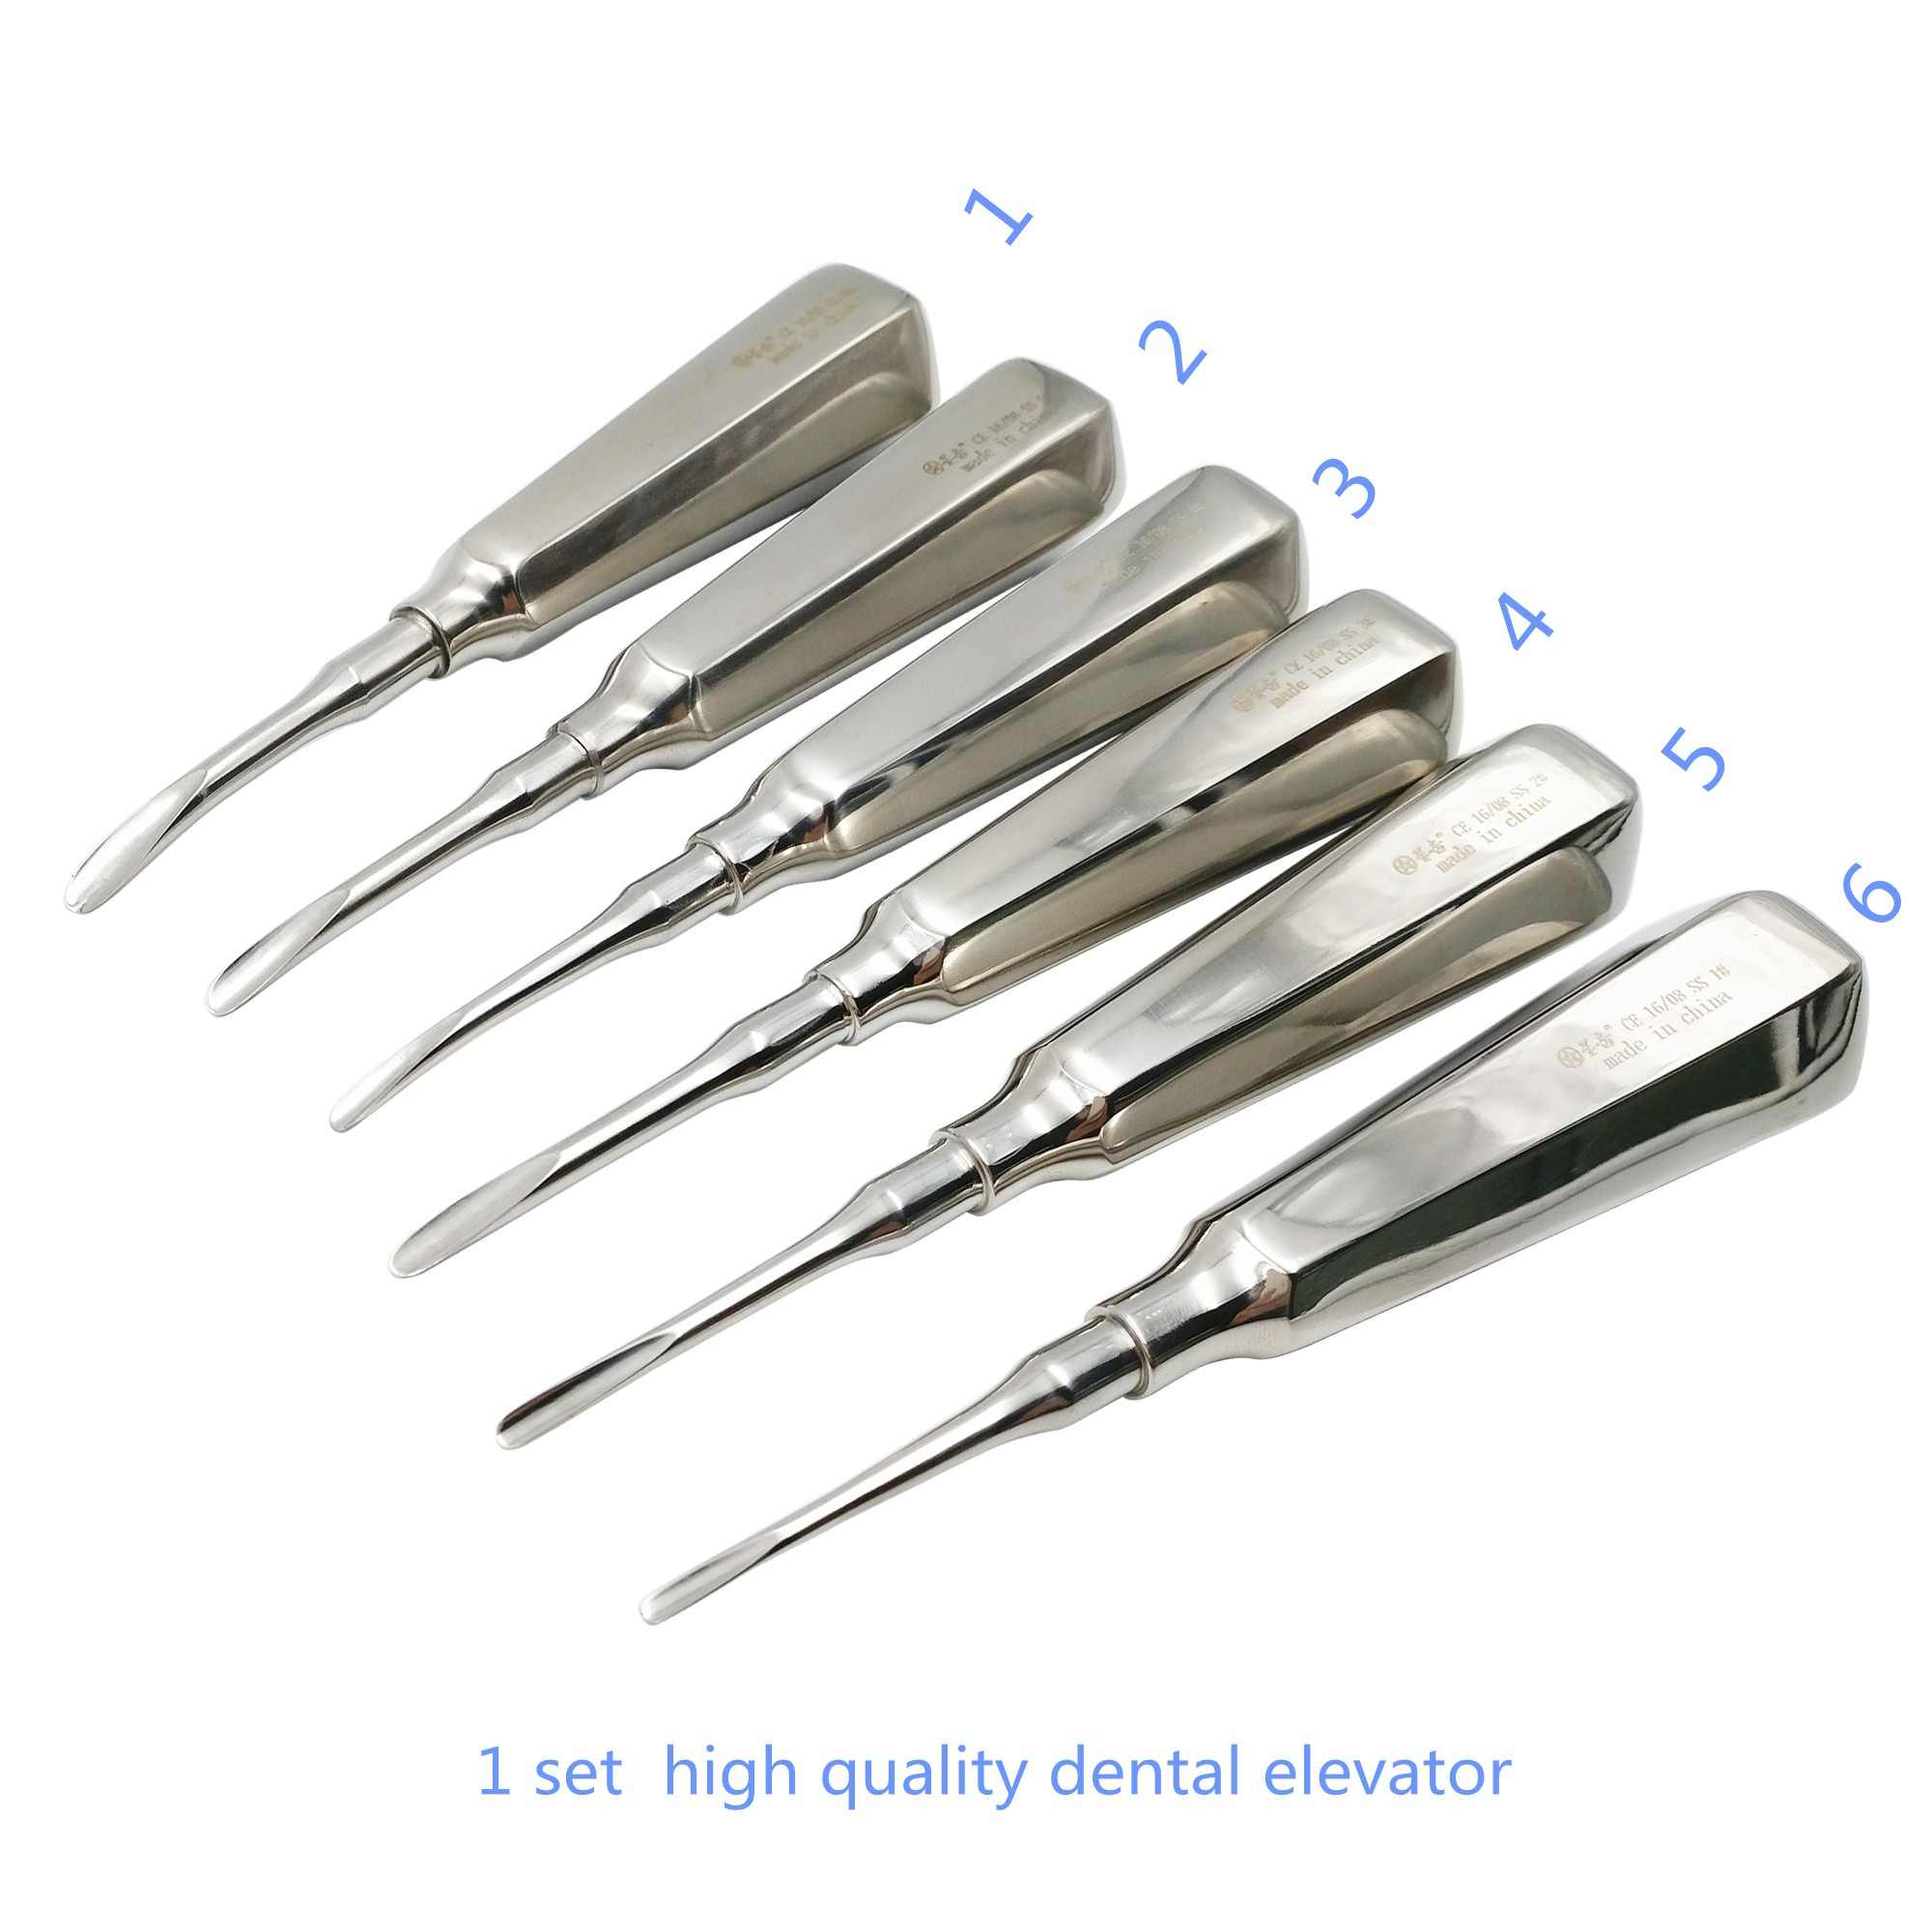 free shipping good dental curved root elevator for dentistry dentist Minimally invasive tooth extraction dental teeth whitening